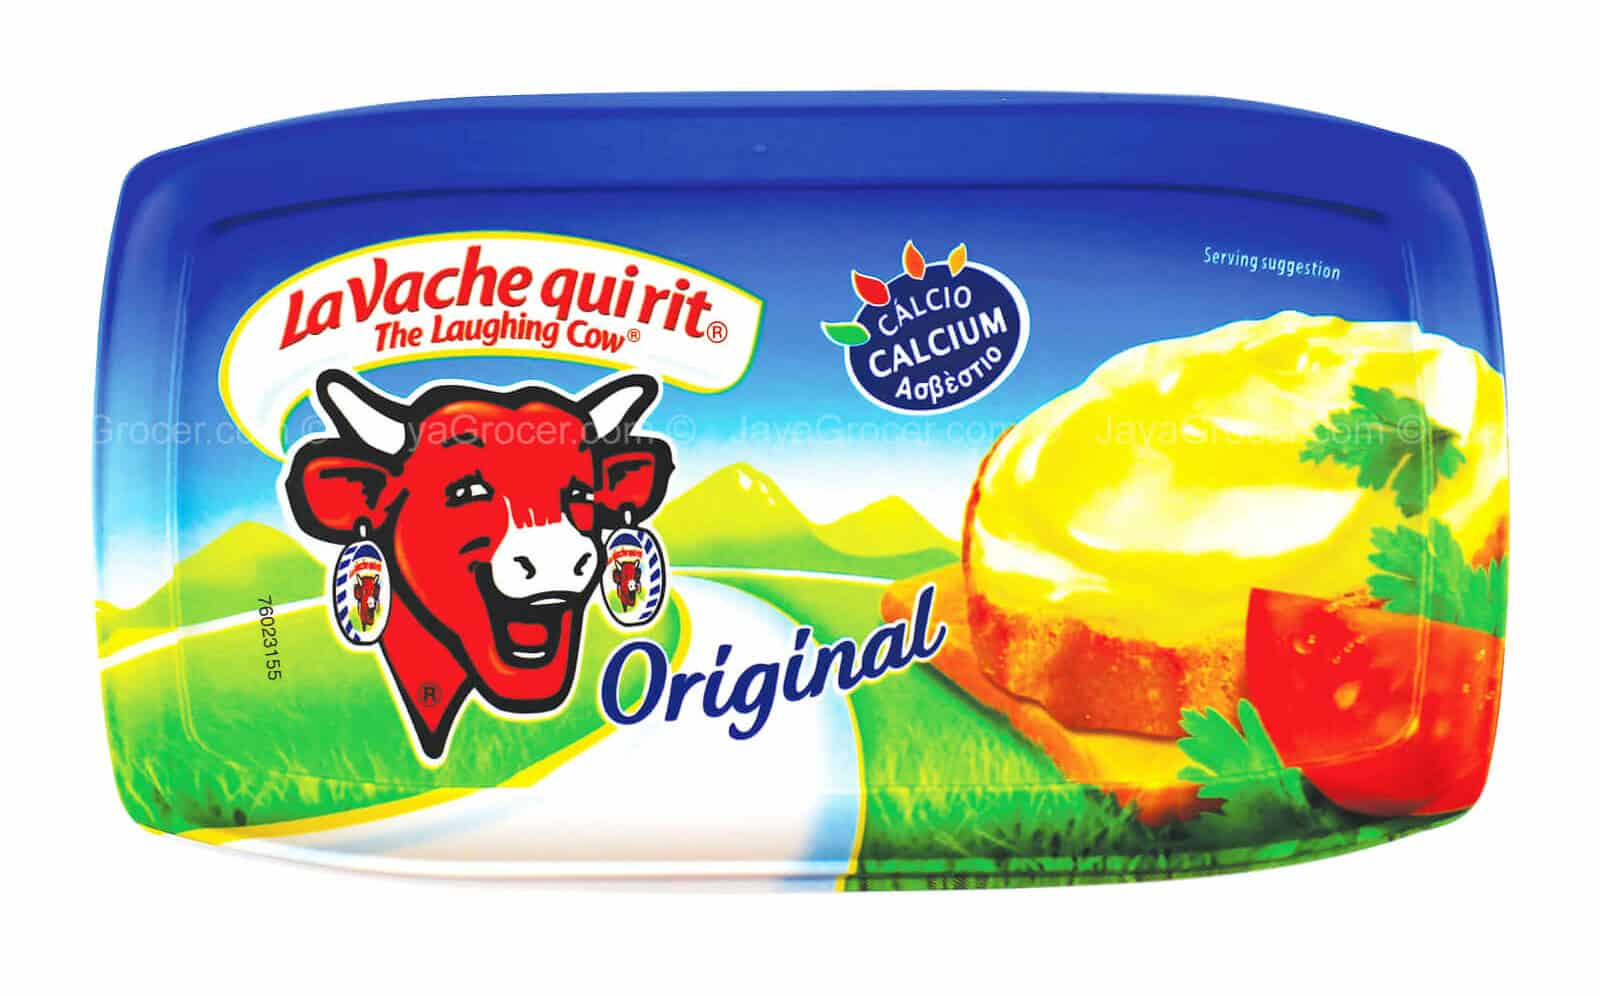 The-Laughing-Cow-Original-Cheese-Spread